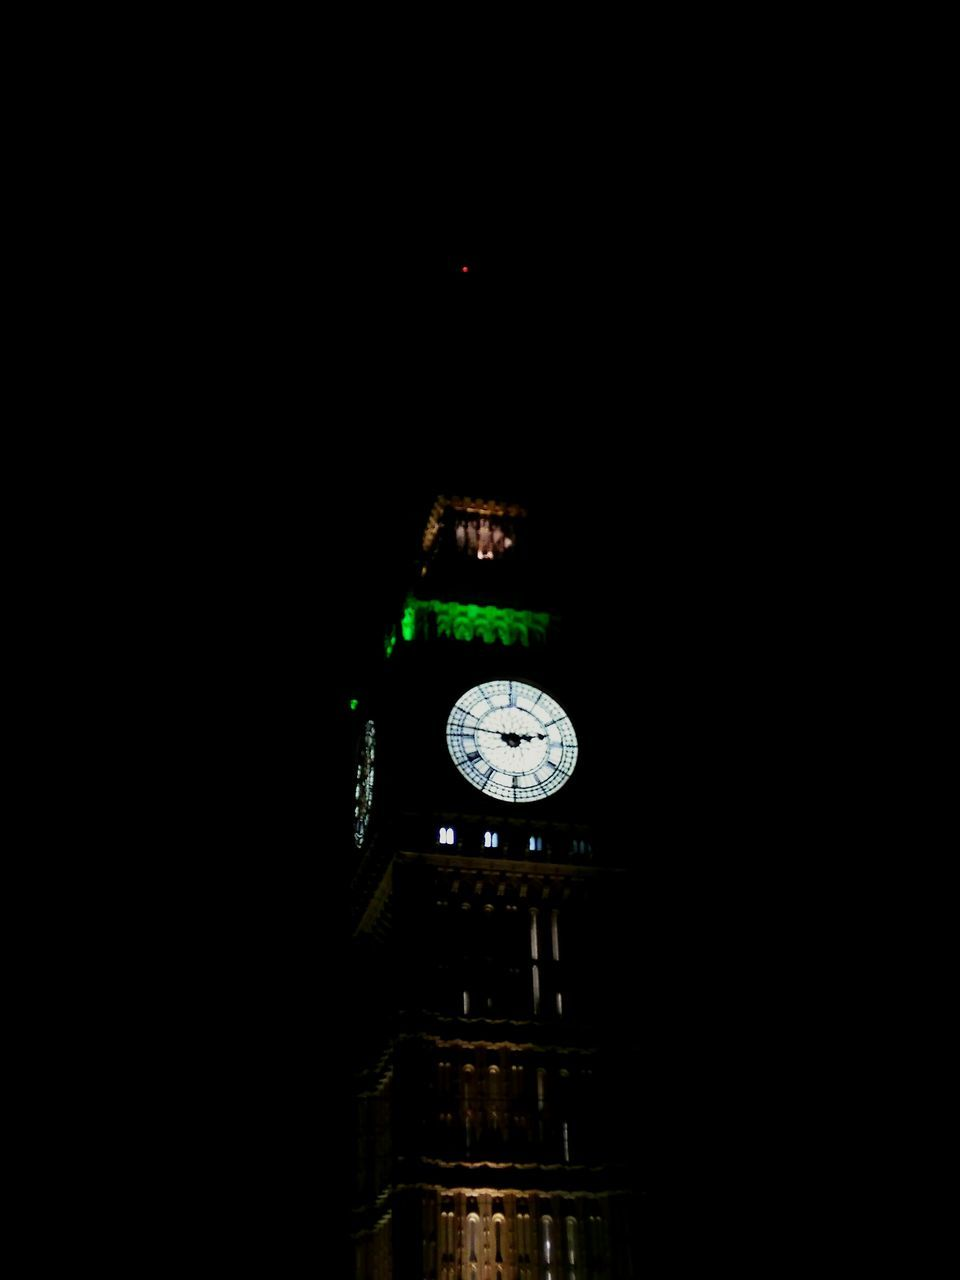 time, clock, copy space, night, no people, clock tower, clock face, illuminated, black background, studio shot, architecture, outdoors, close-up, minute hand